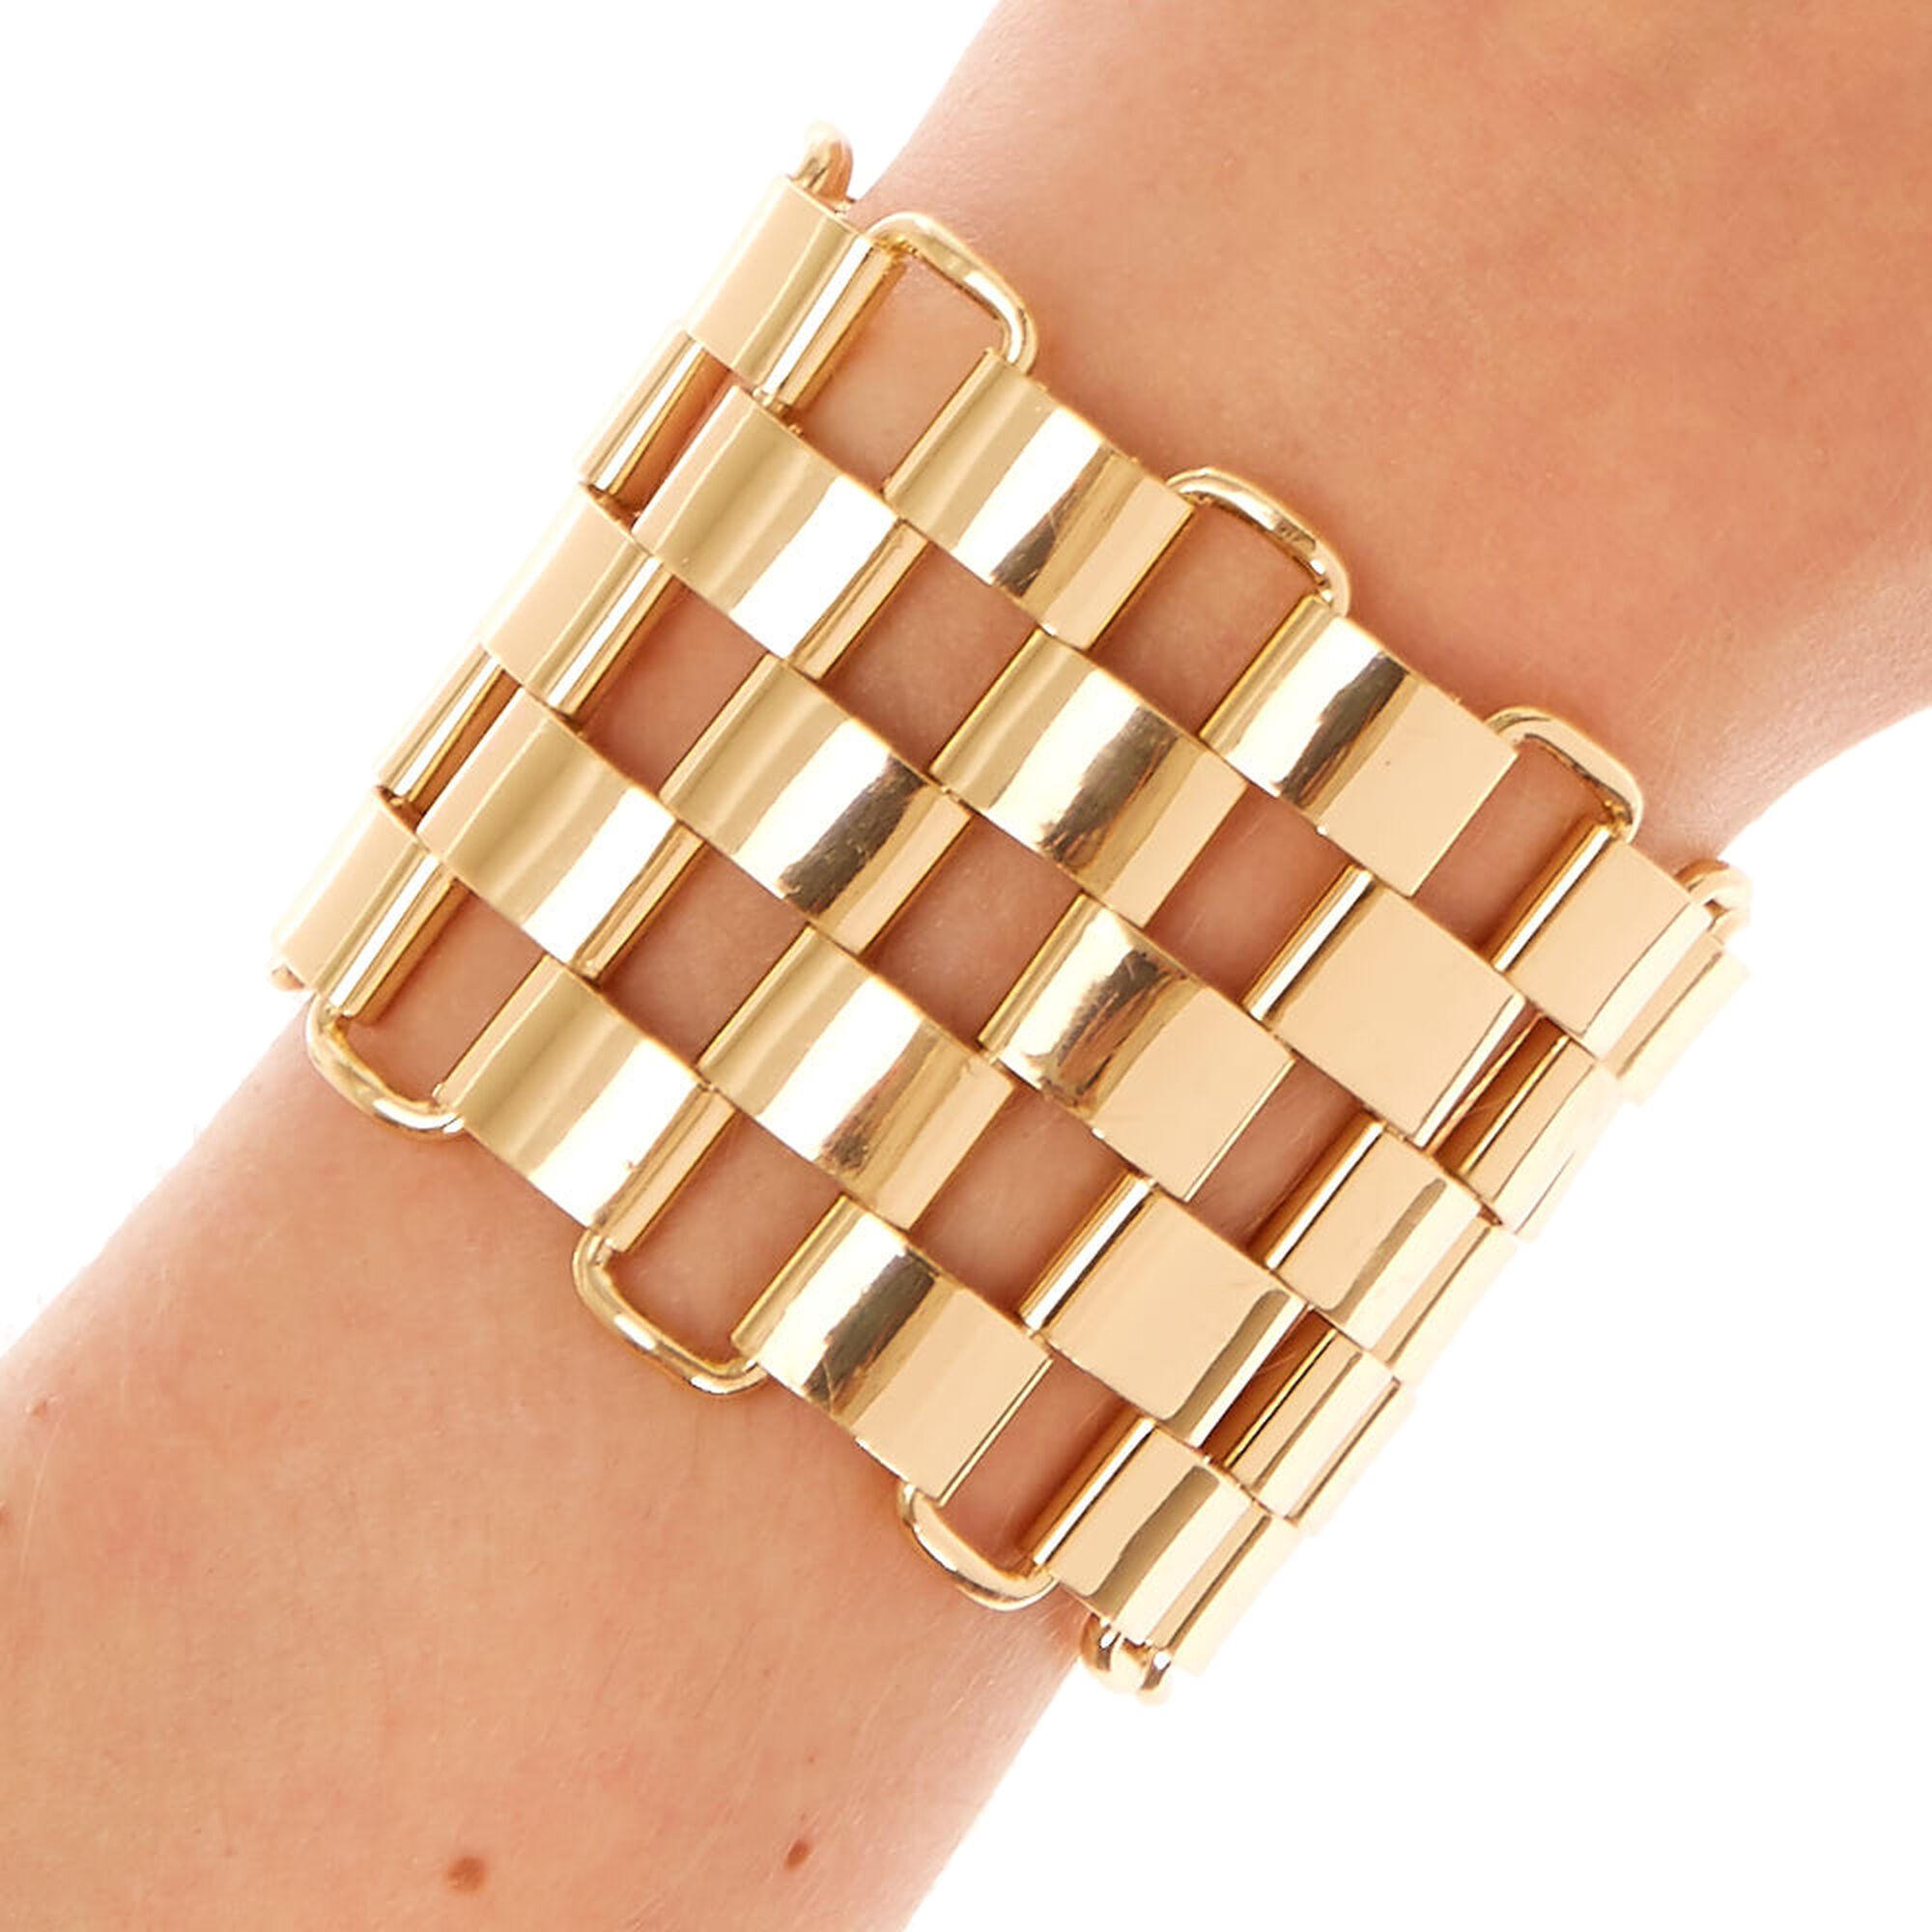 tri bangle dhgate bracelet product large rolling gold color from model com e bay